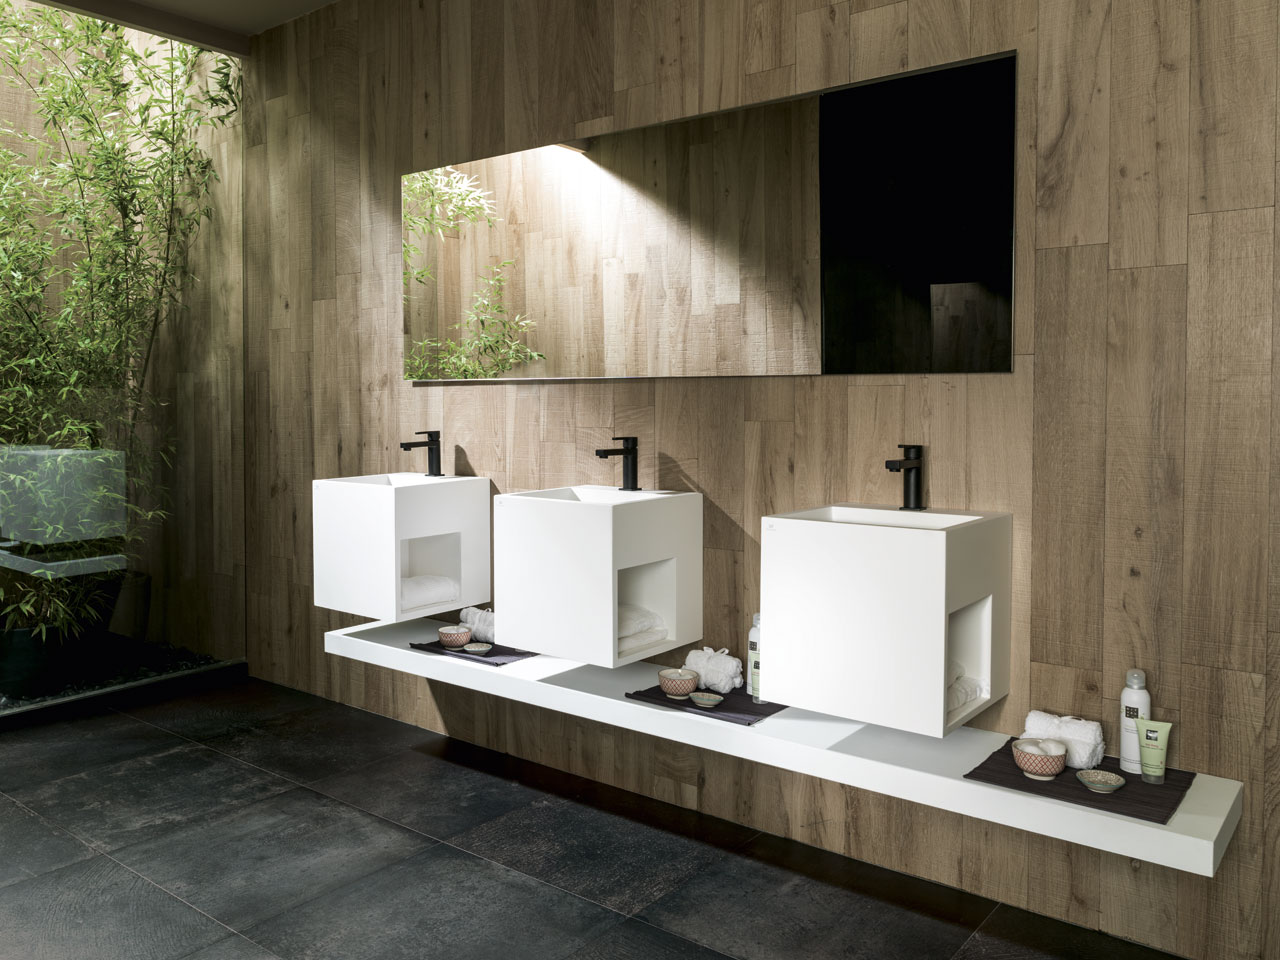 Lavabo Krion Porcelanosa Systempool Lavabo Krion Ras Lavabo Spacers